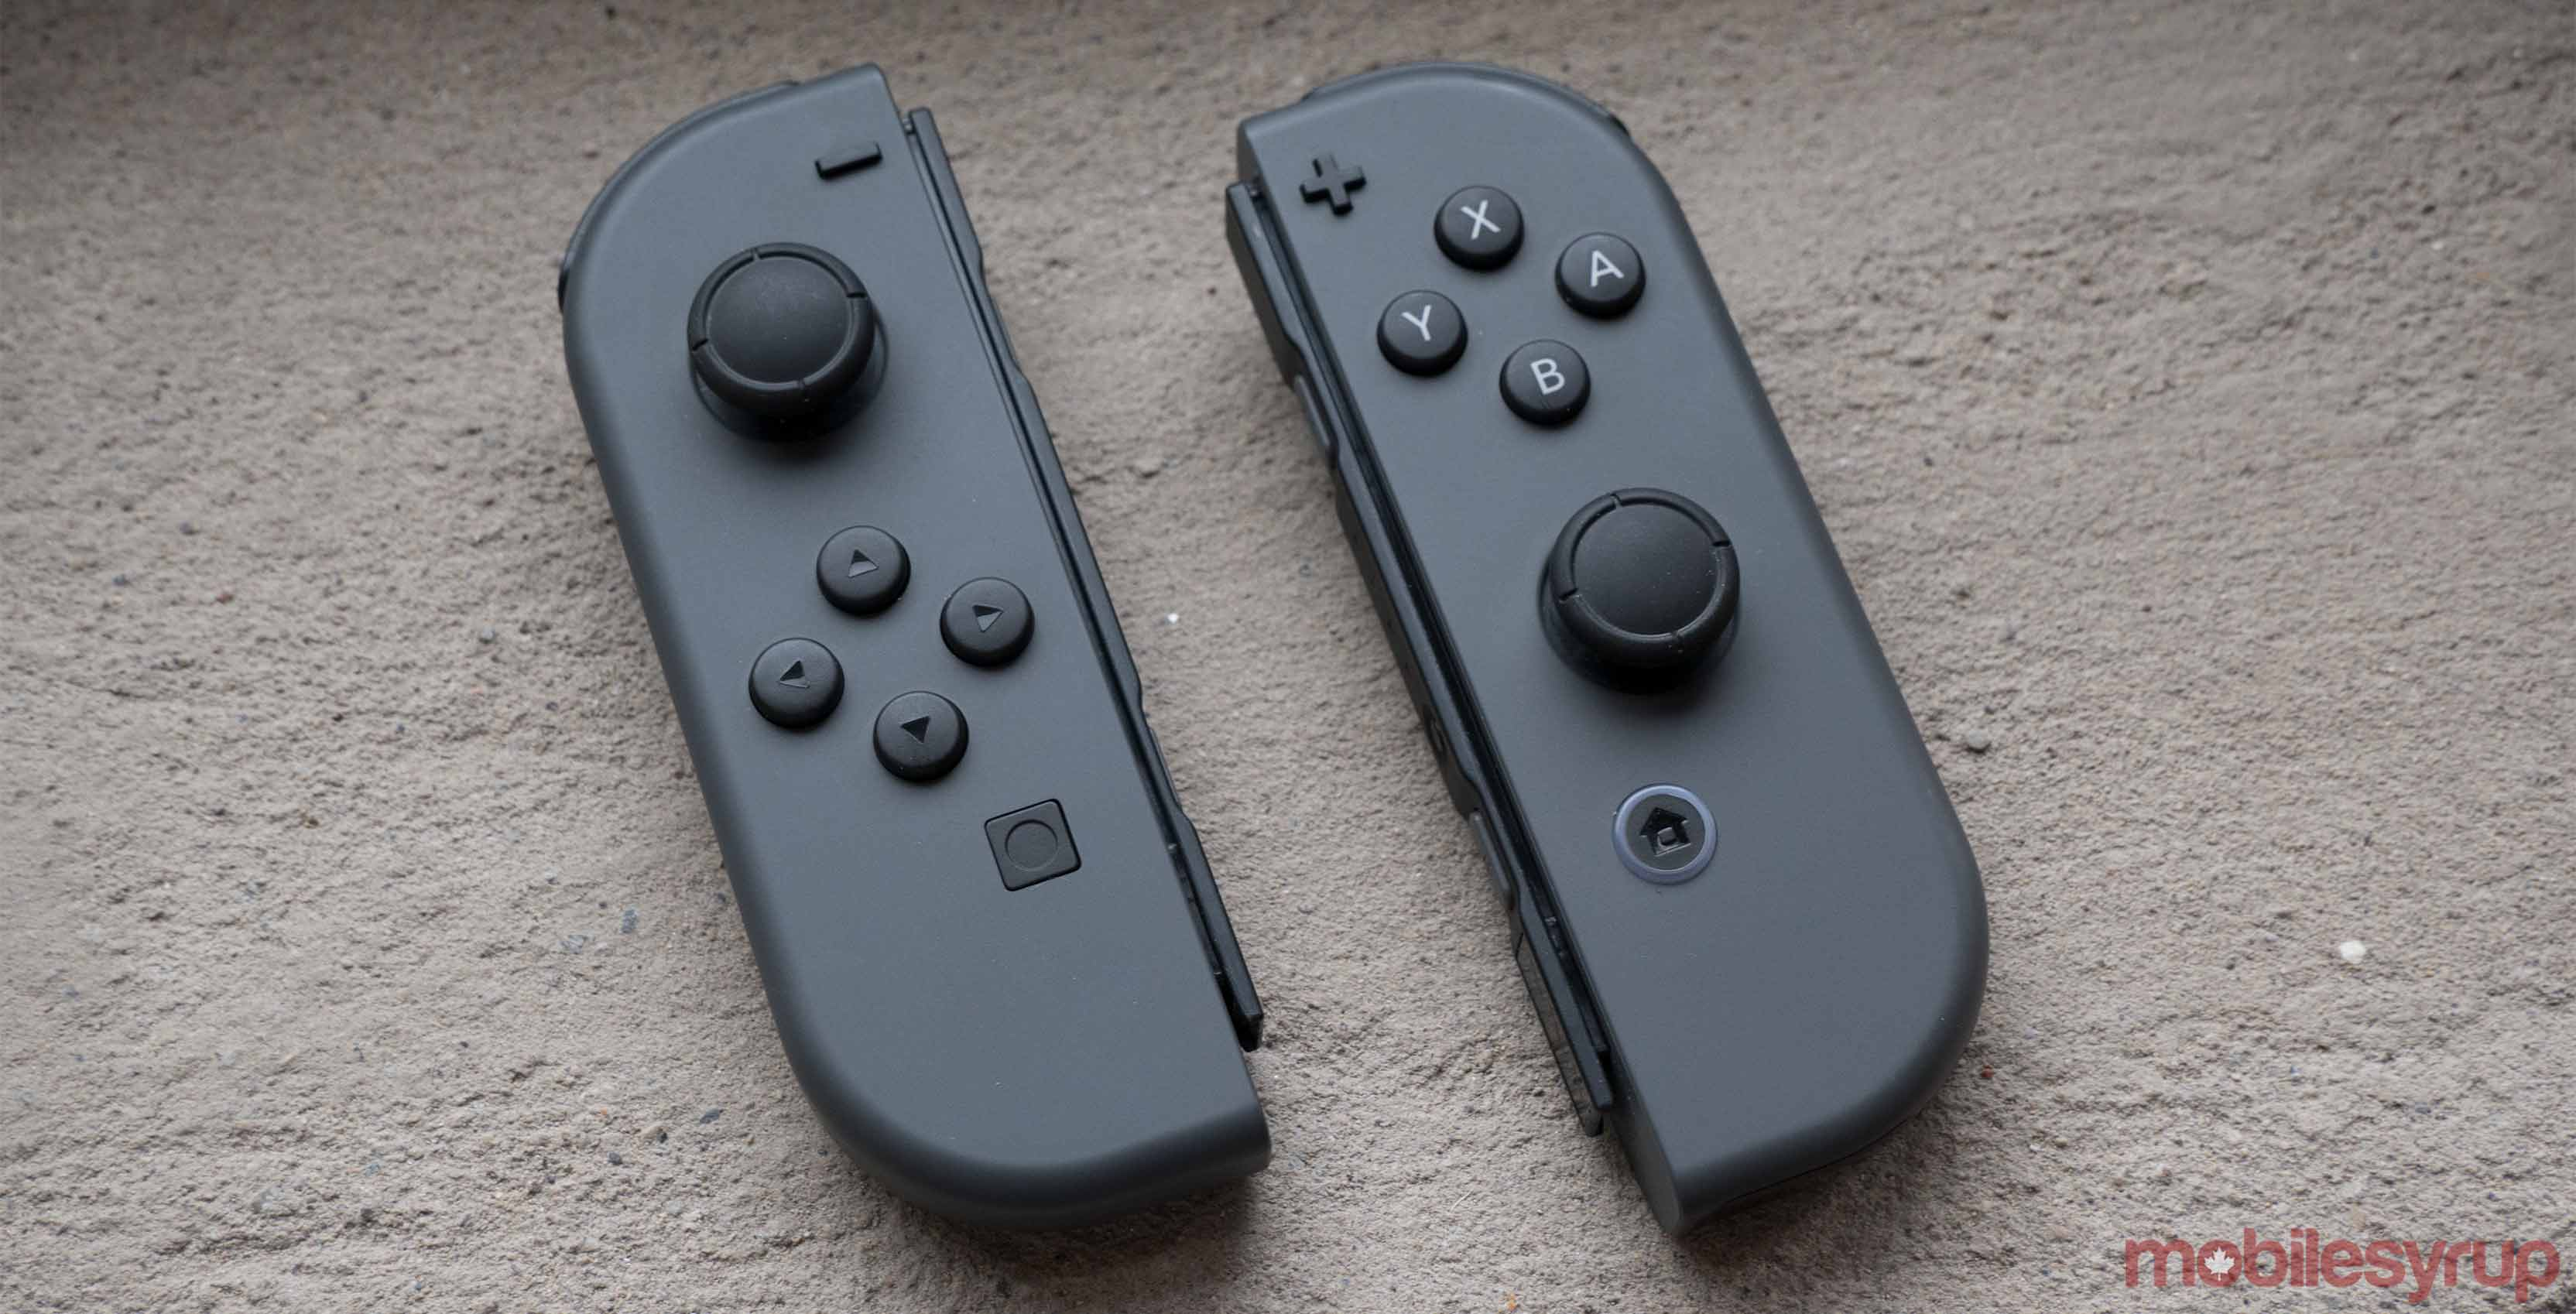 Nintendo Switch Joy-con controllers work with Android, PC